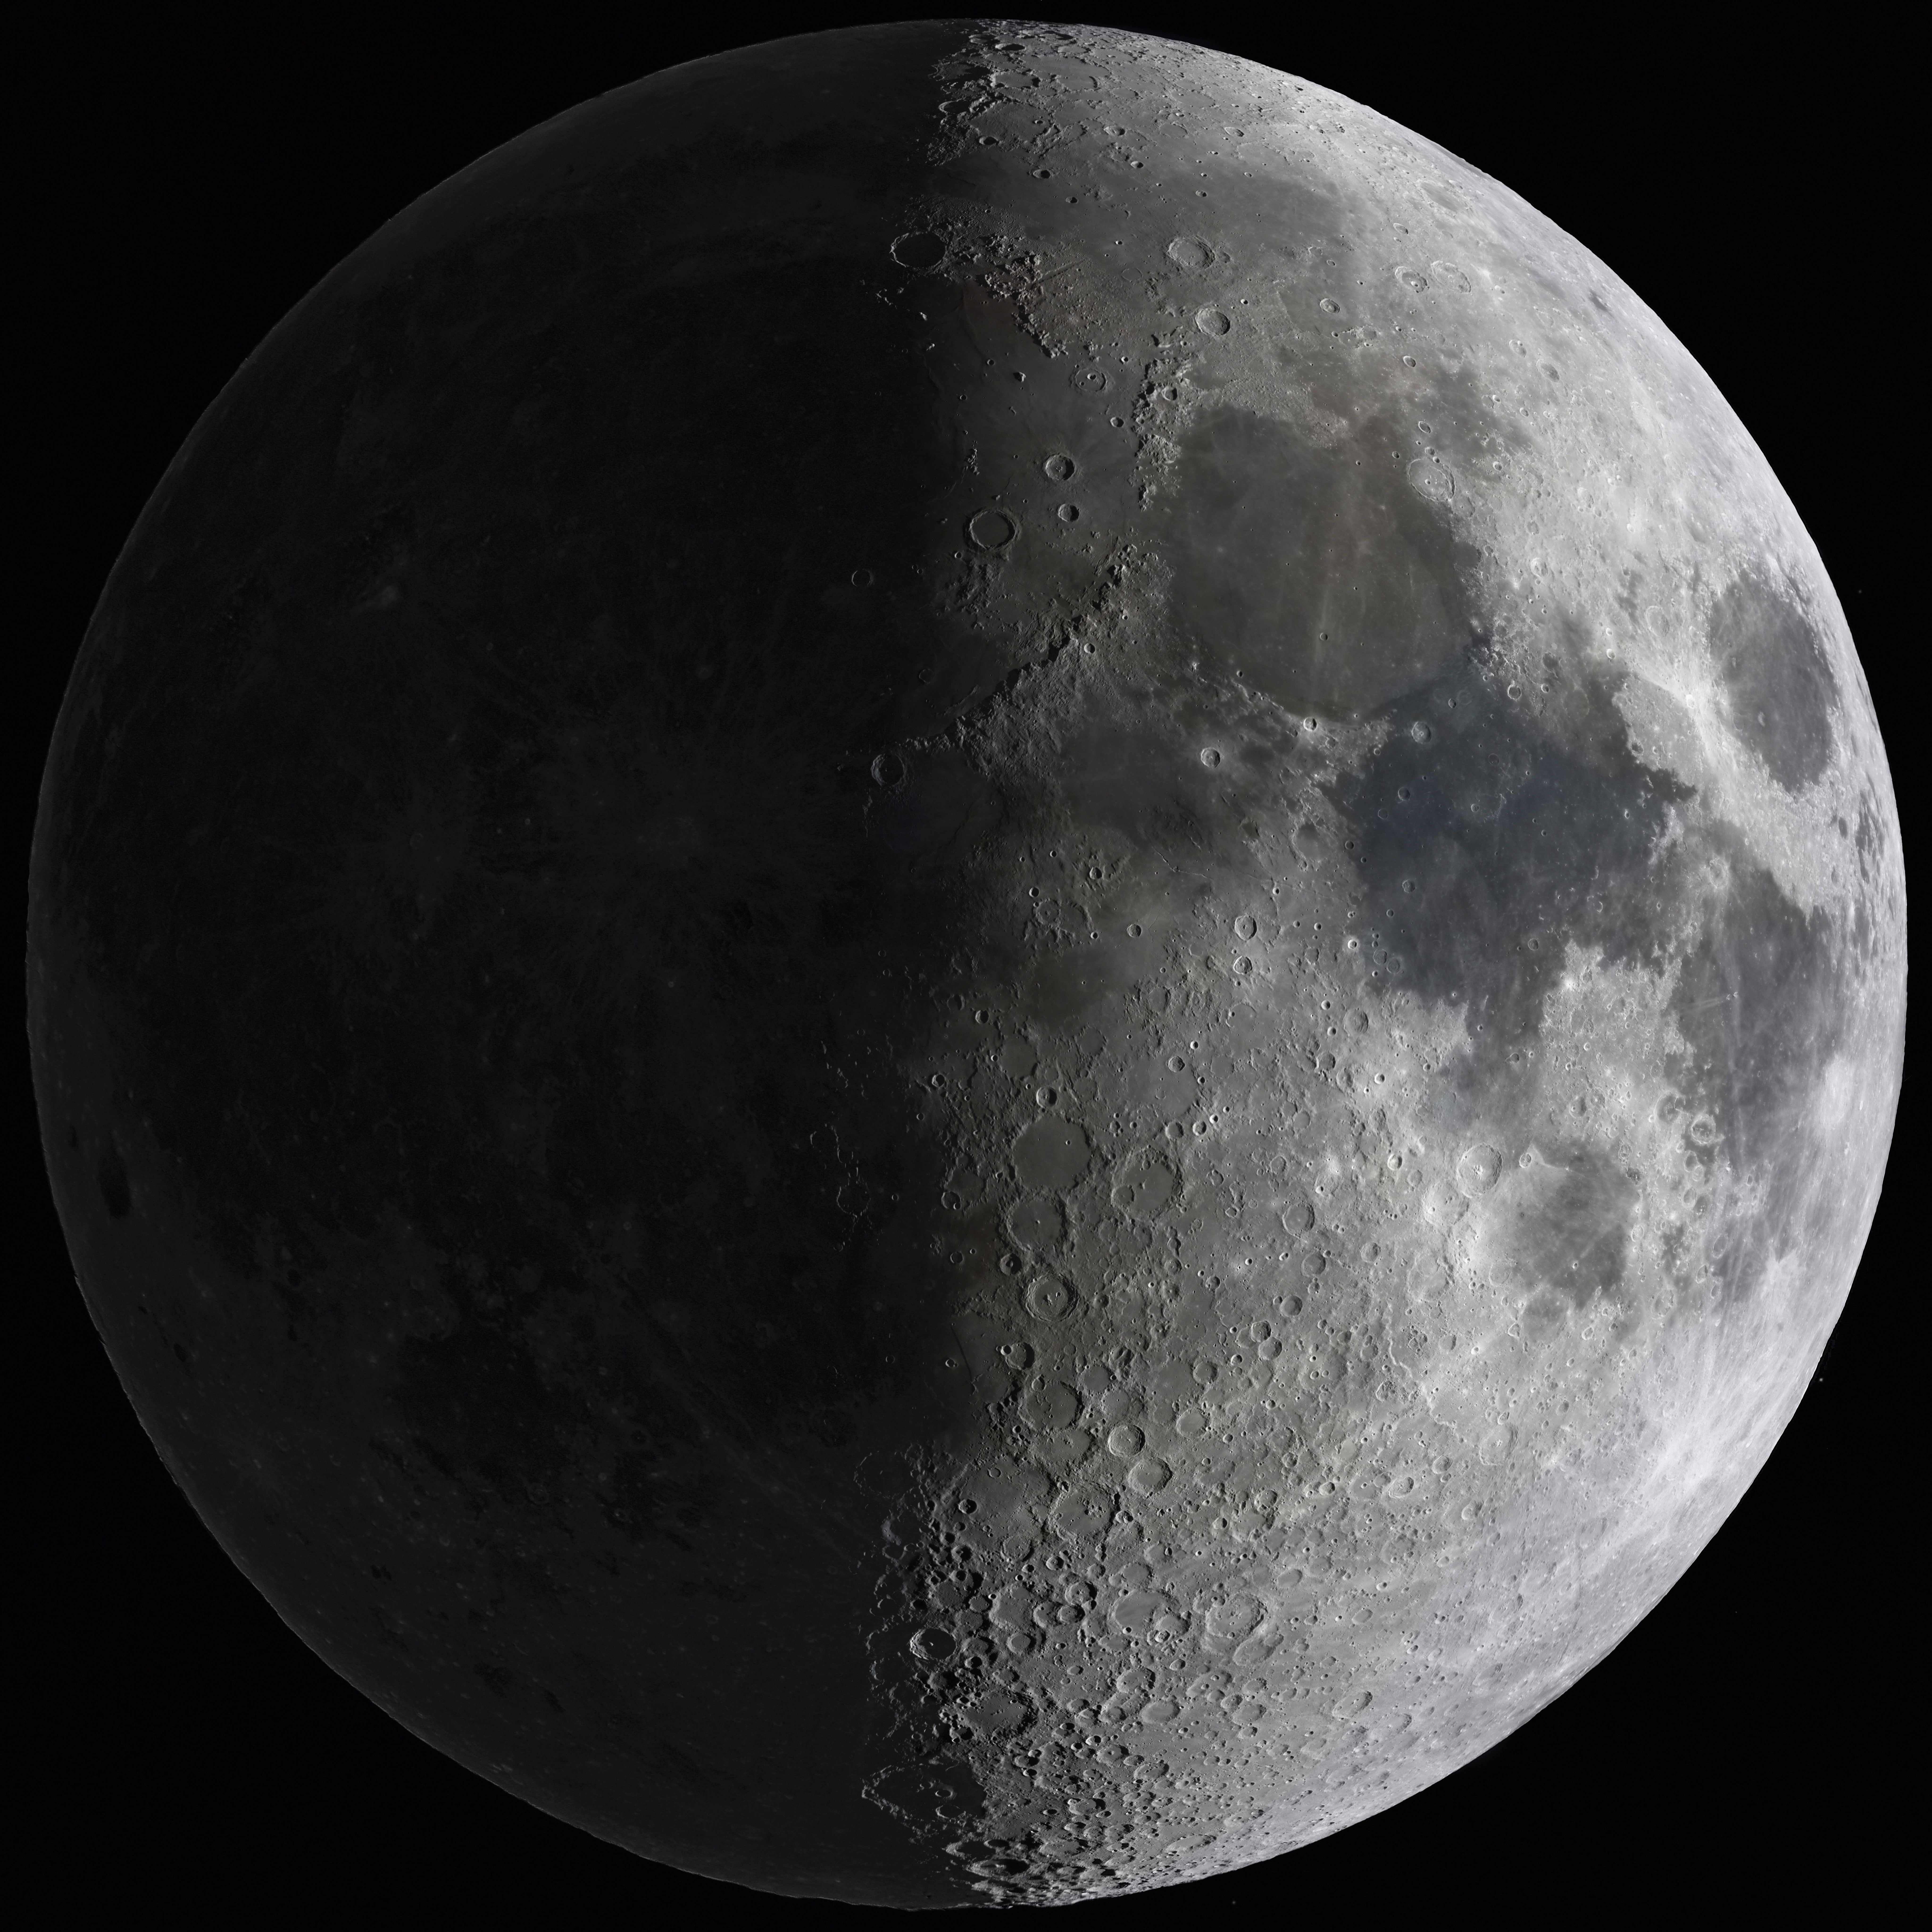 100 Megapixel Shot Of The Moon Zoom In On The Craters Http Bit Ly 2xwbjfv Photoshop Battle Iphone Wallpaper Hd Original Moon